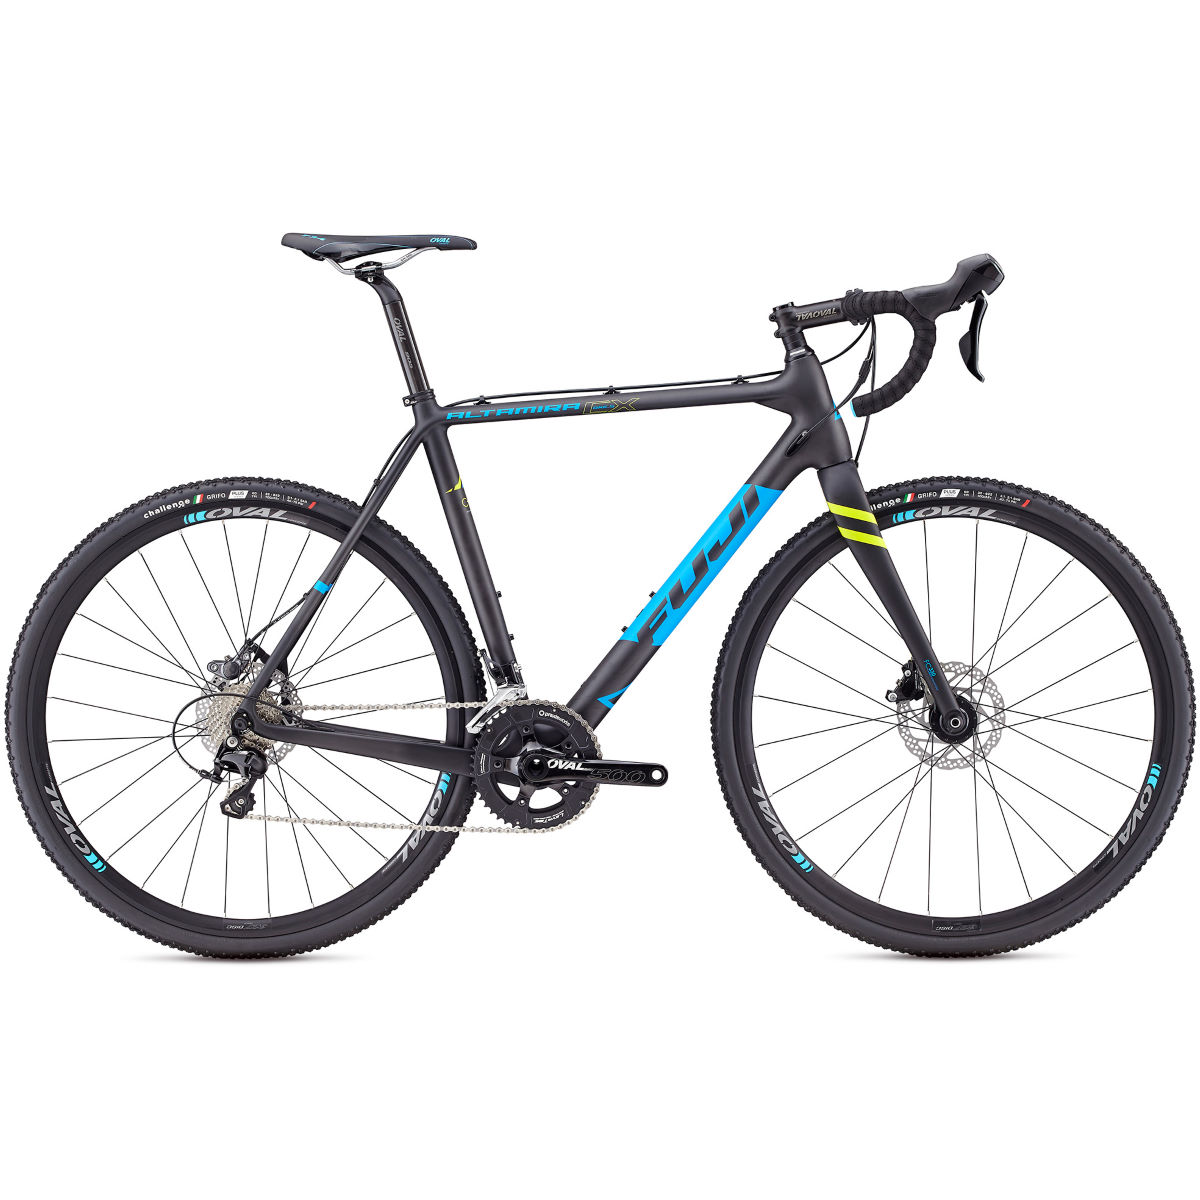 Fuji Altamira CX 1.5 Bike (2017) - Bicicletas de ciclocross